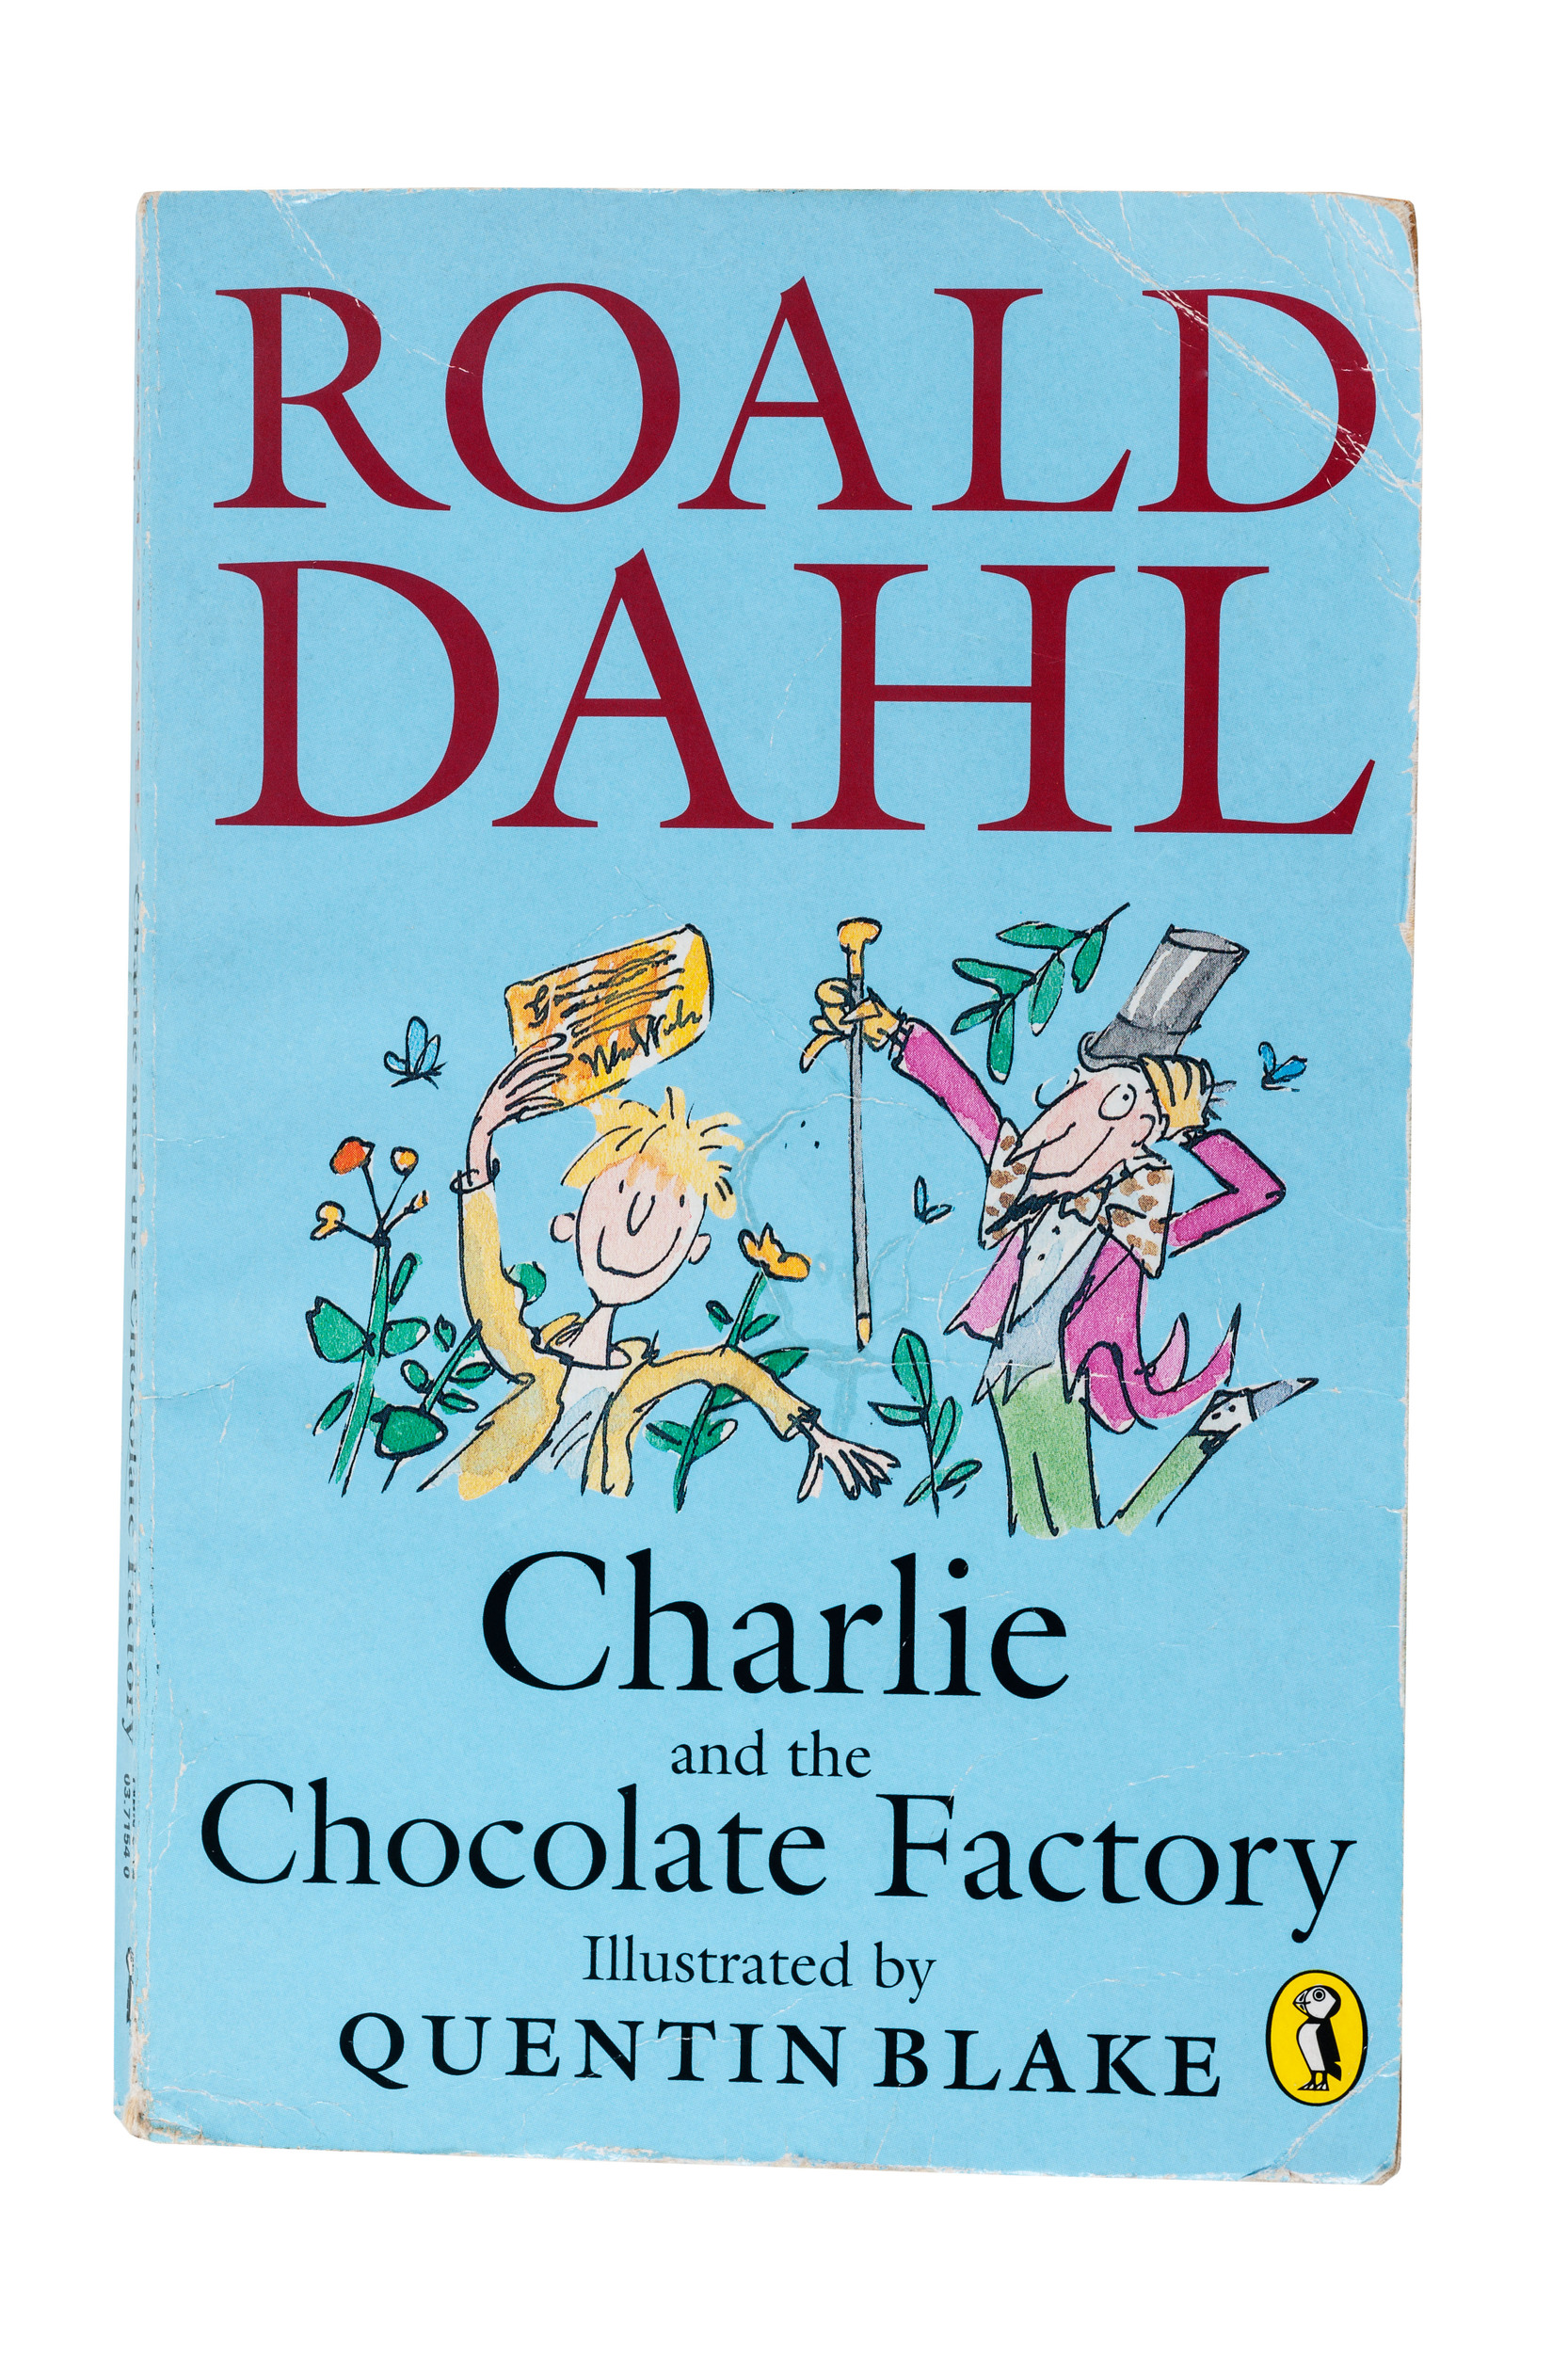 Charlie And The Chocolate Factory Gets A Creepy New Cover